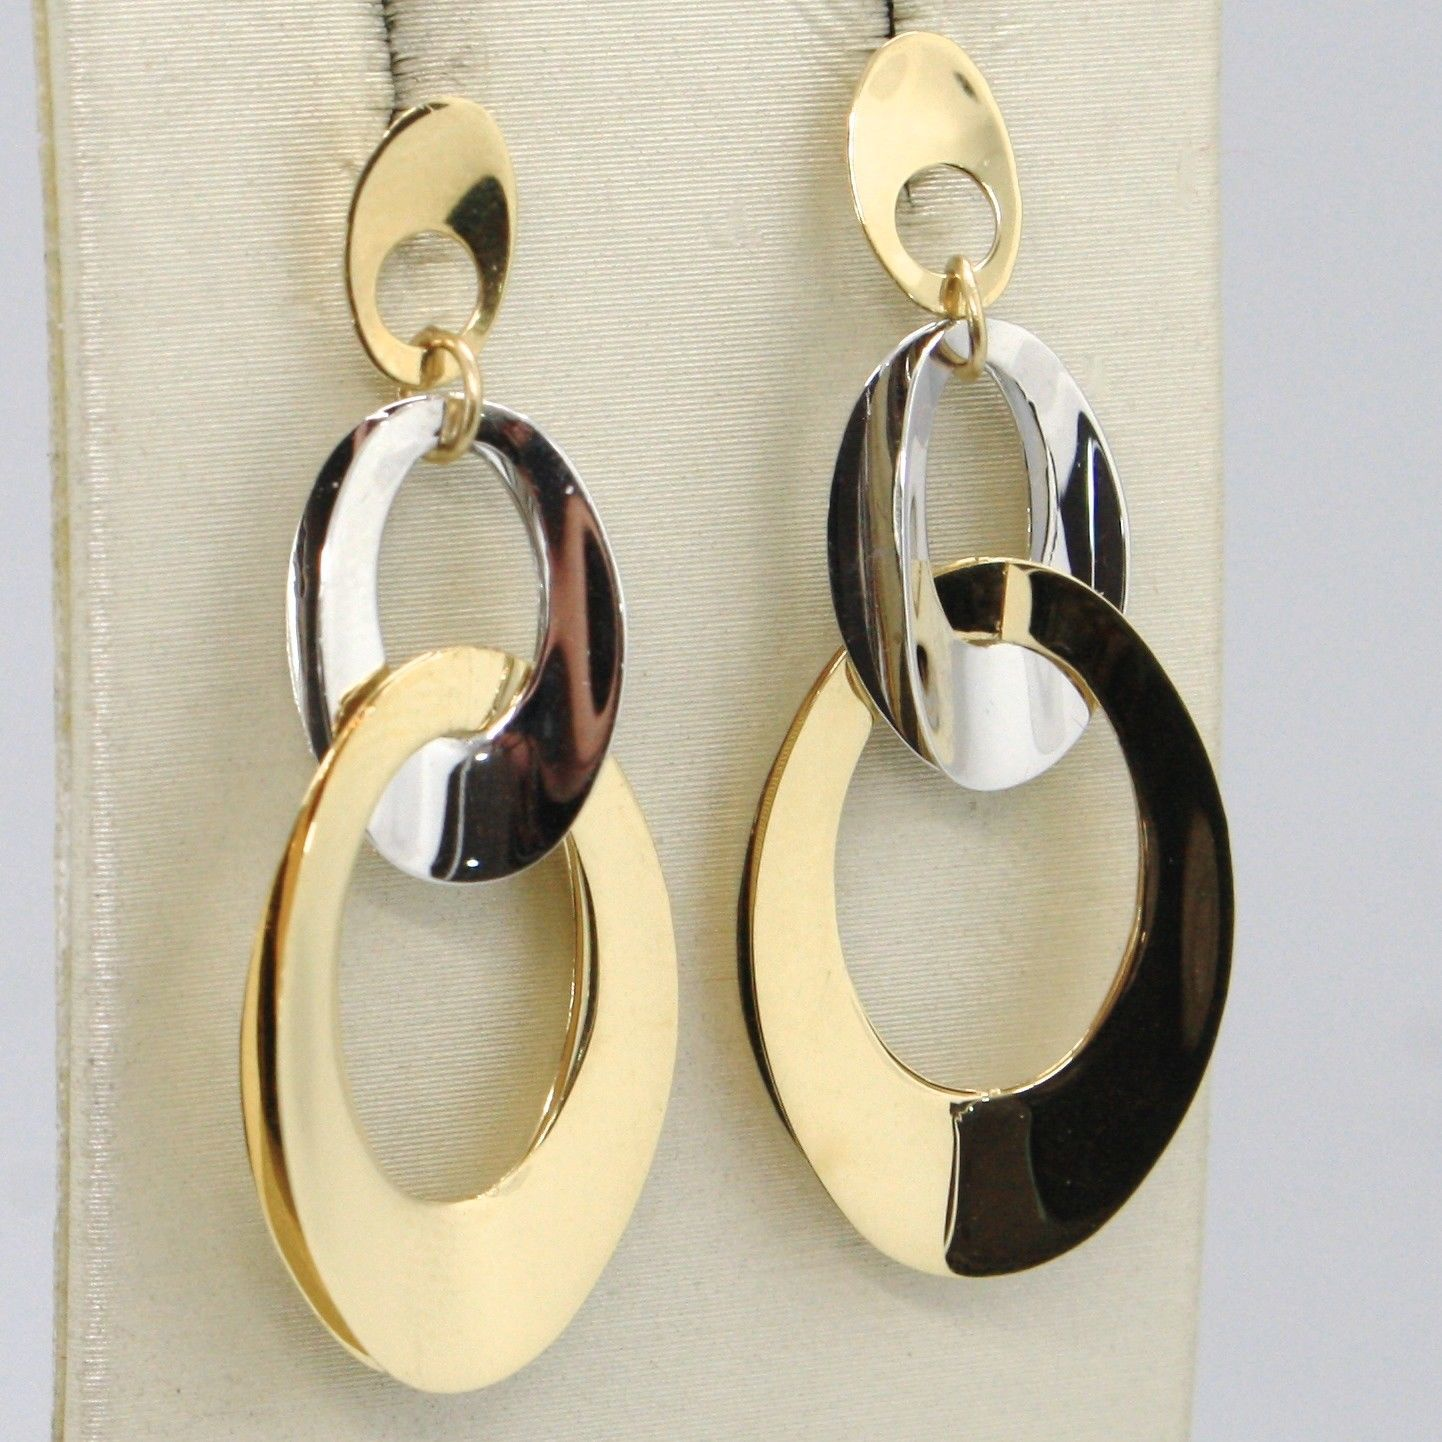 SOLID 18K YELLOW WHITE GOLD PENDANT EARRINGS, TRIPLE ONDULATE OVAL MADE IN ITALY